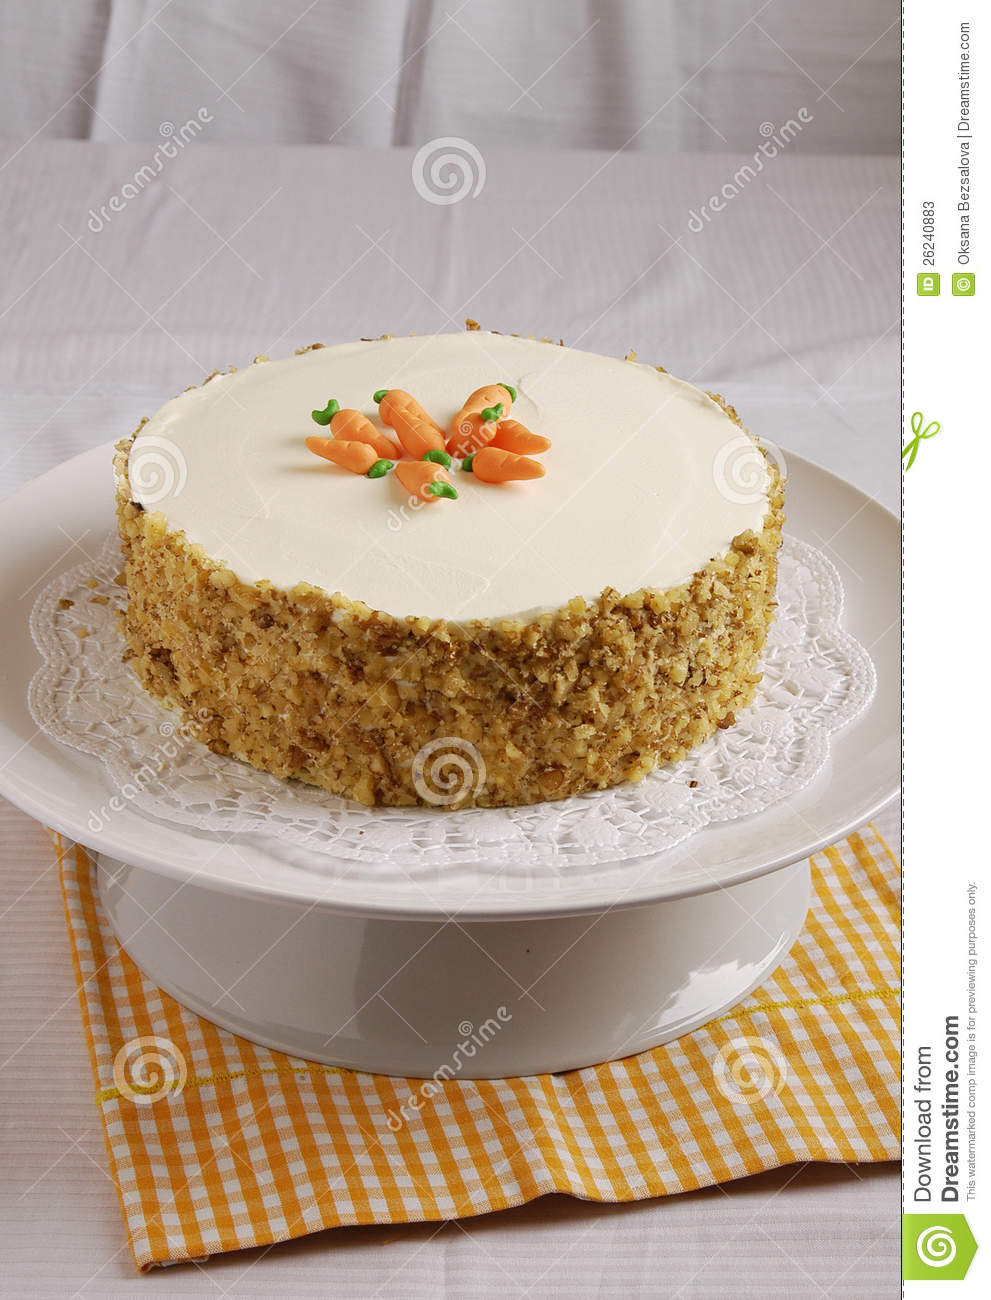 Decorating Ideas For A Carrot Cake